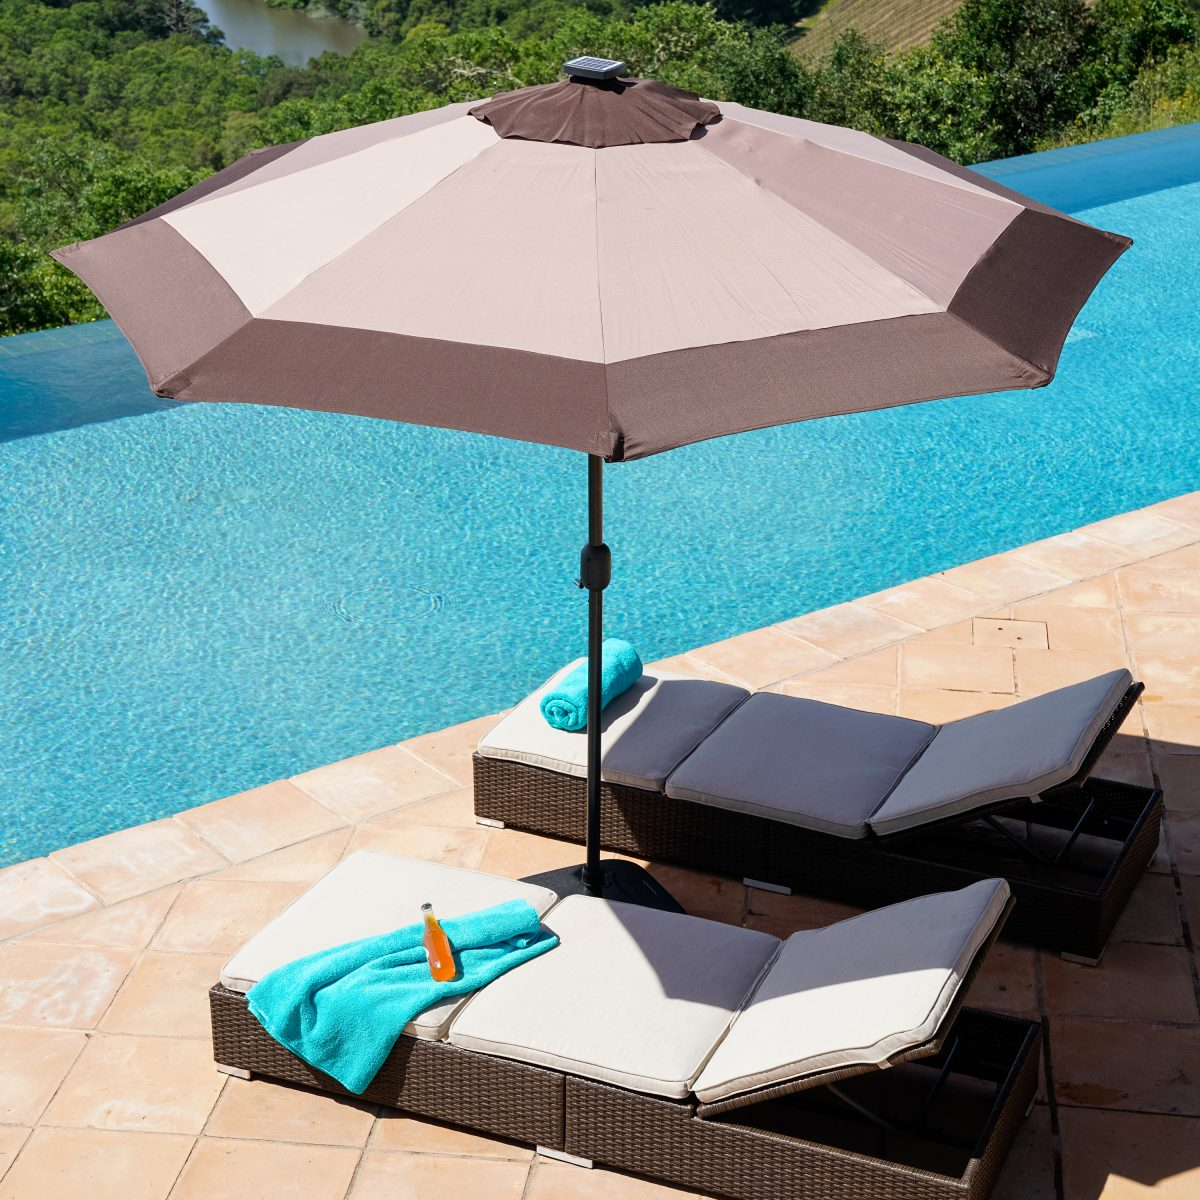 poolside furniture ideas - patio umbrella